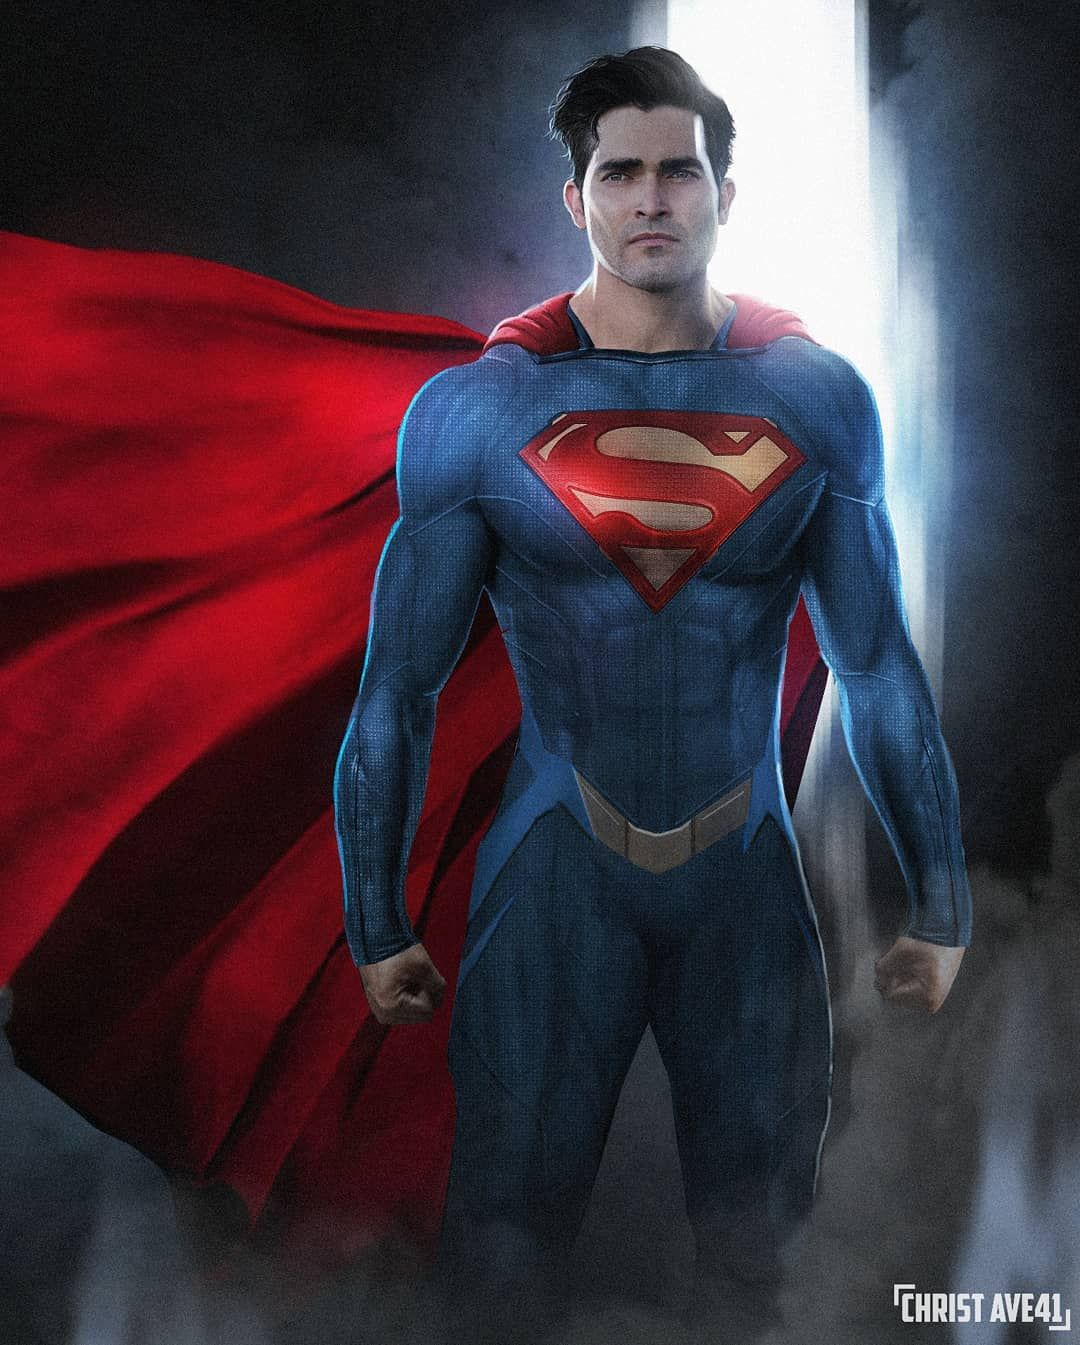 Christ Ave On Instagram Superman Lois Is Coming To Cw Show And Tylerhoechlin Deserve A New Super Suit This Is In 2021 Superman Lois Superman Dc Comics Superman